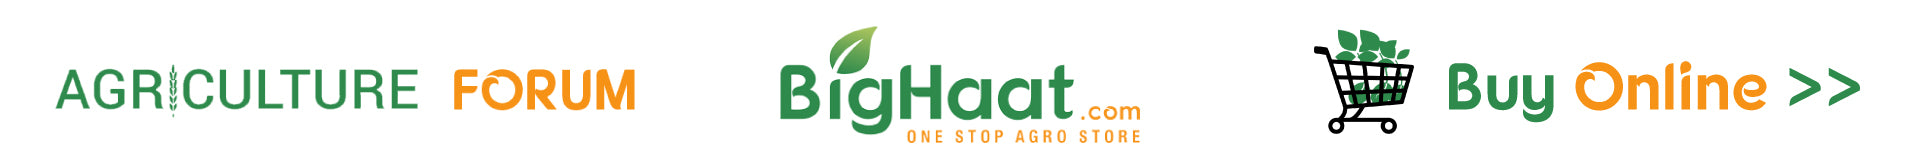 BigHaat Agri Forum